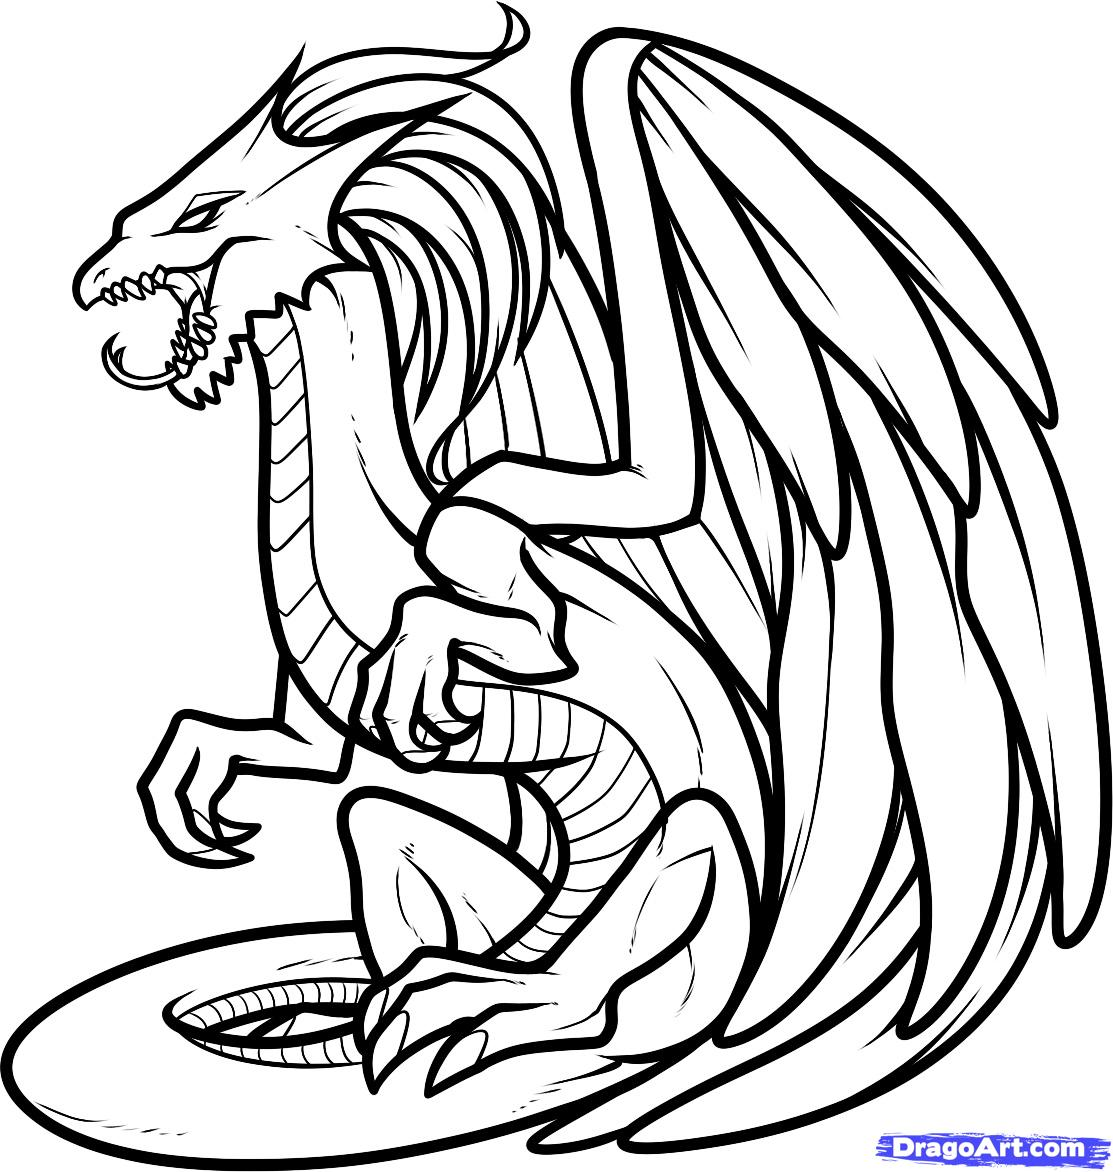 dragon coloring pages. 1113x1172 Download Coloring Pages  Dragon Ball Z Free download best